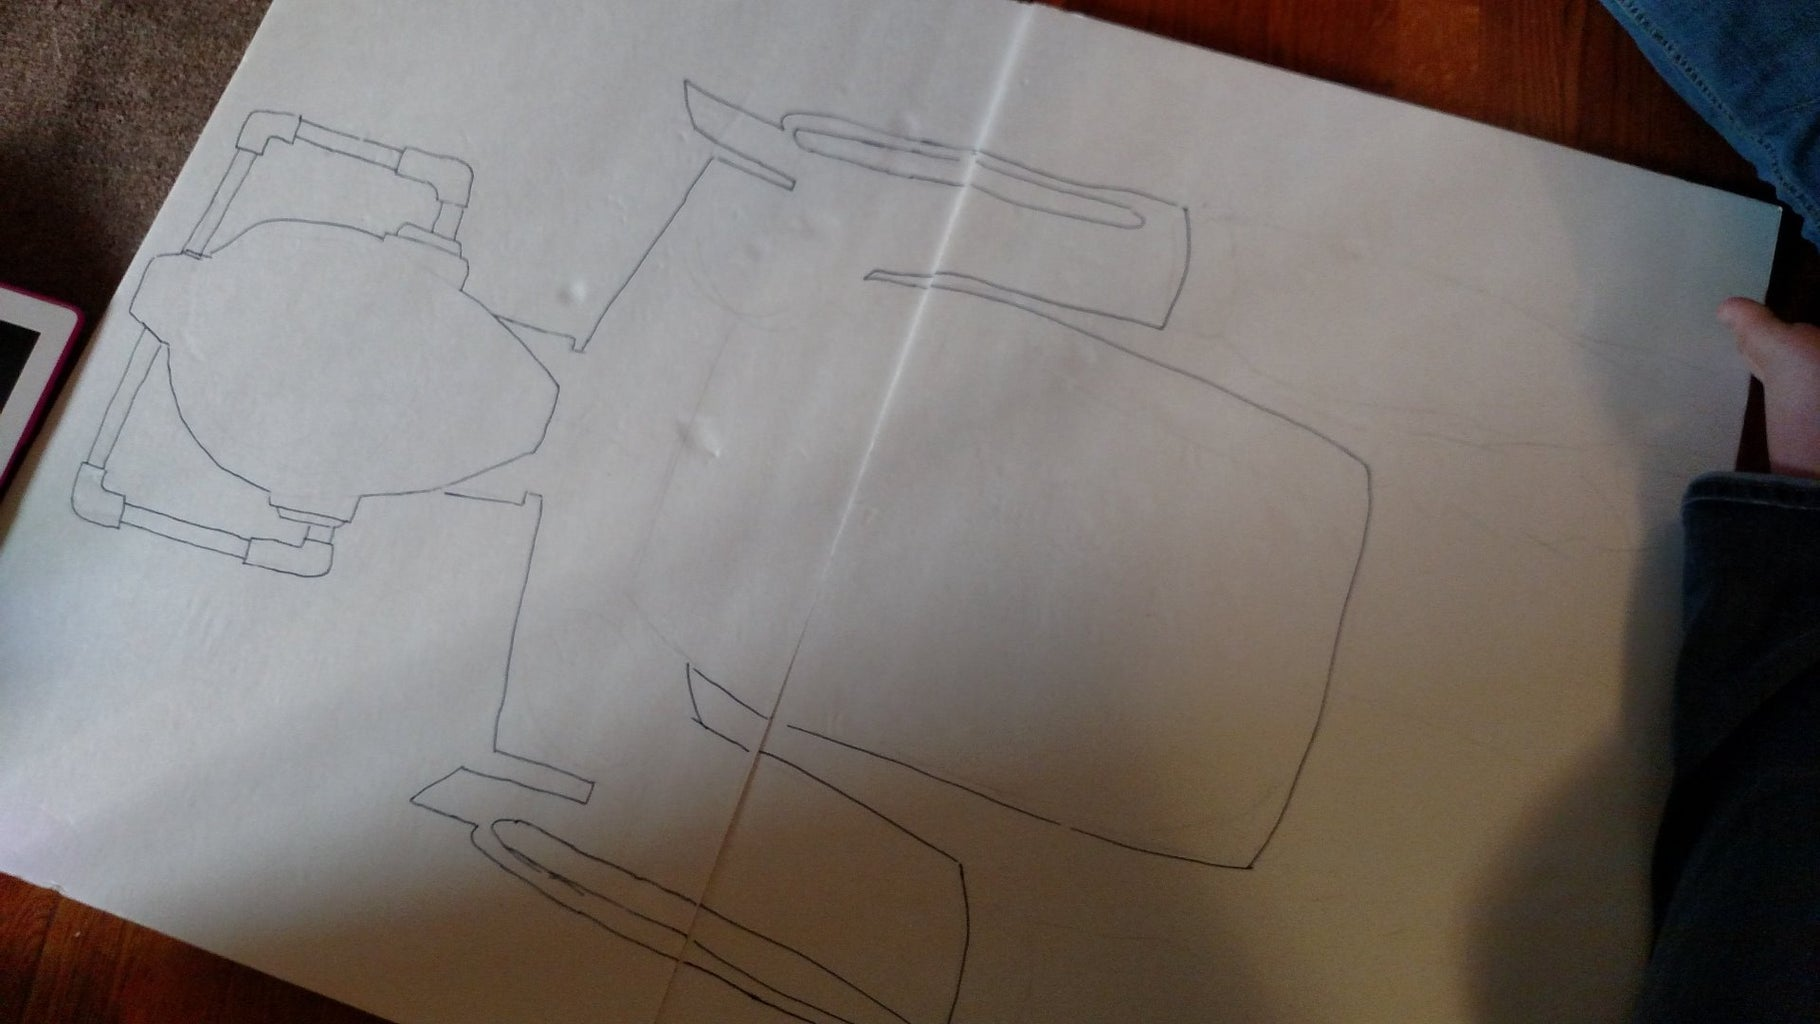 Step 1 Draw the Outline of a Cyberman on the Foam Board